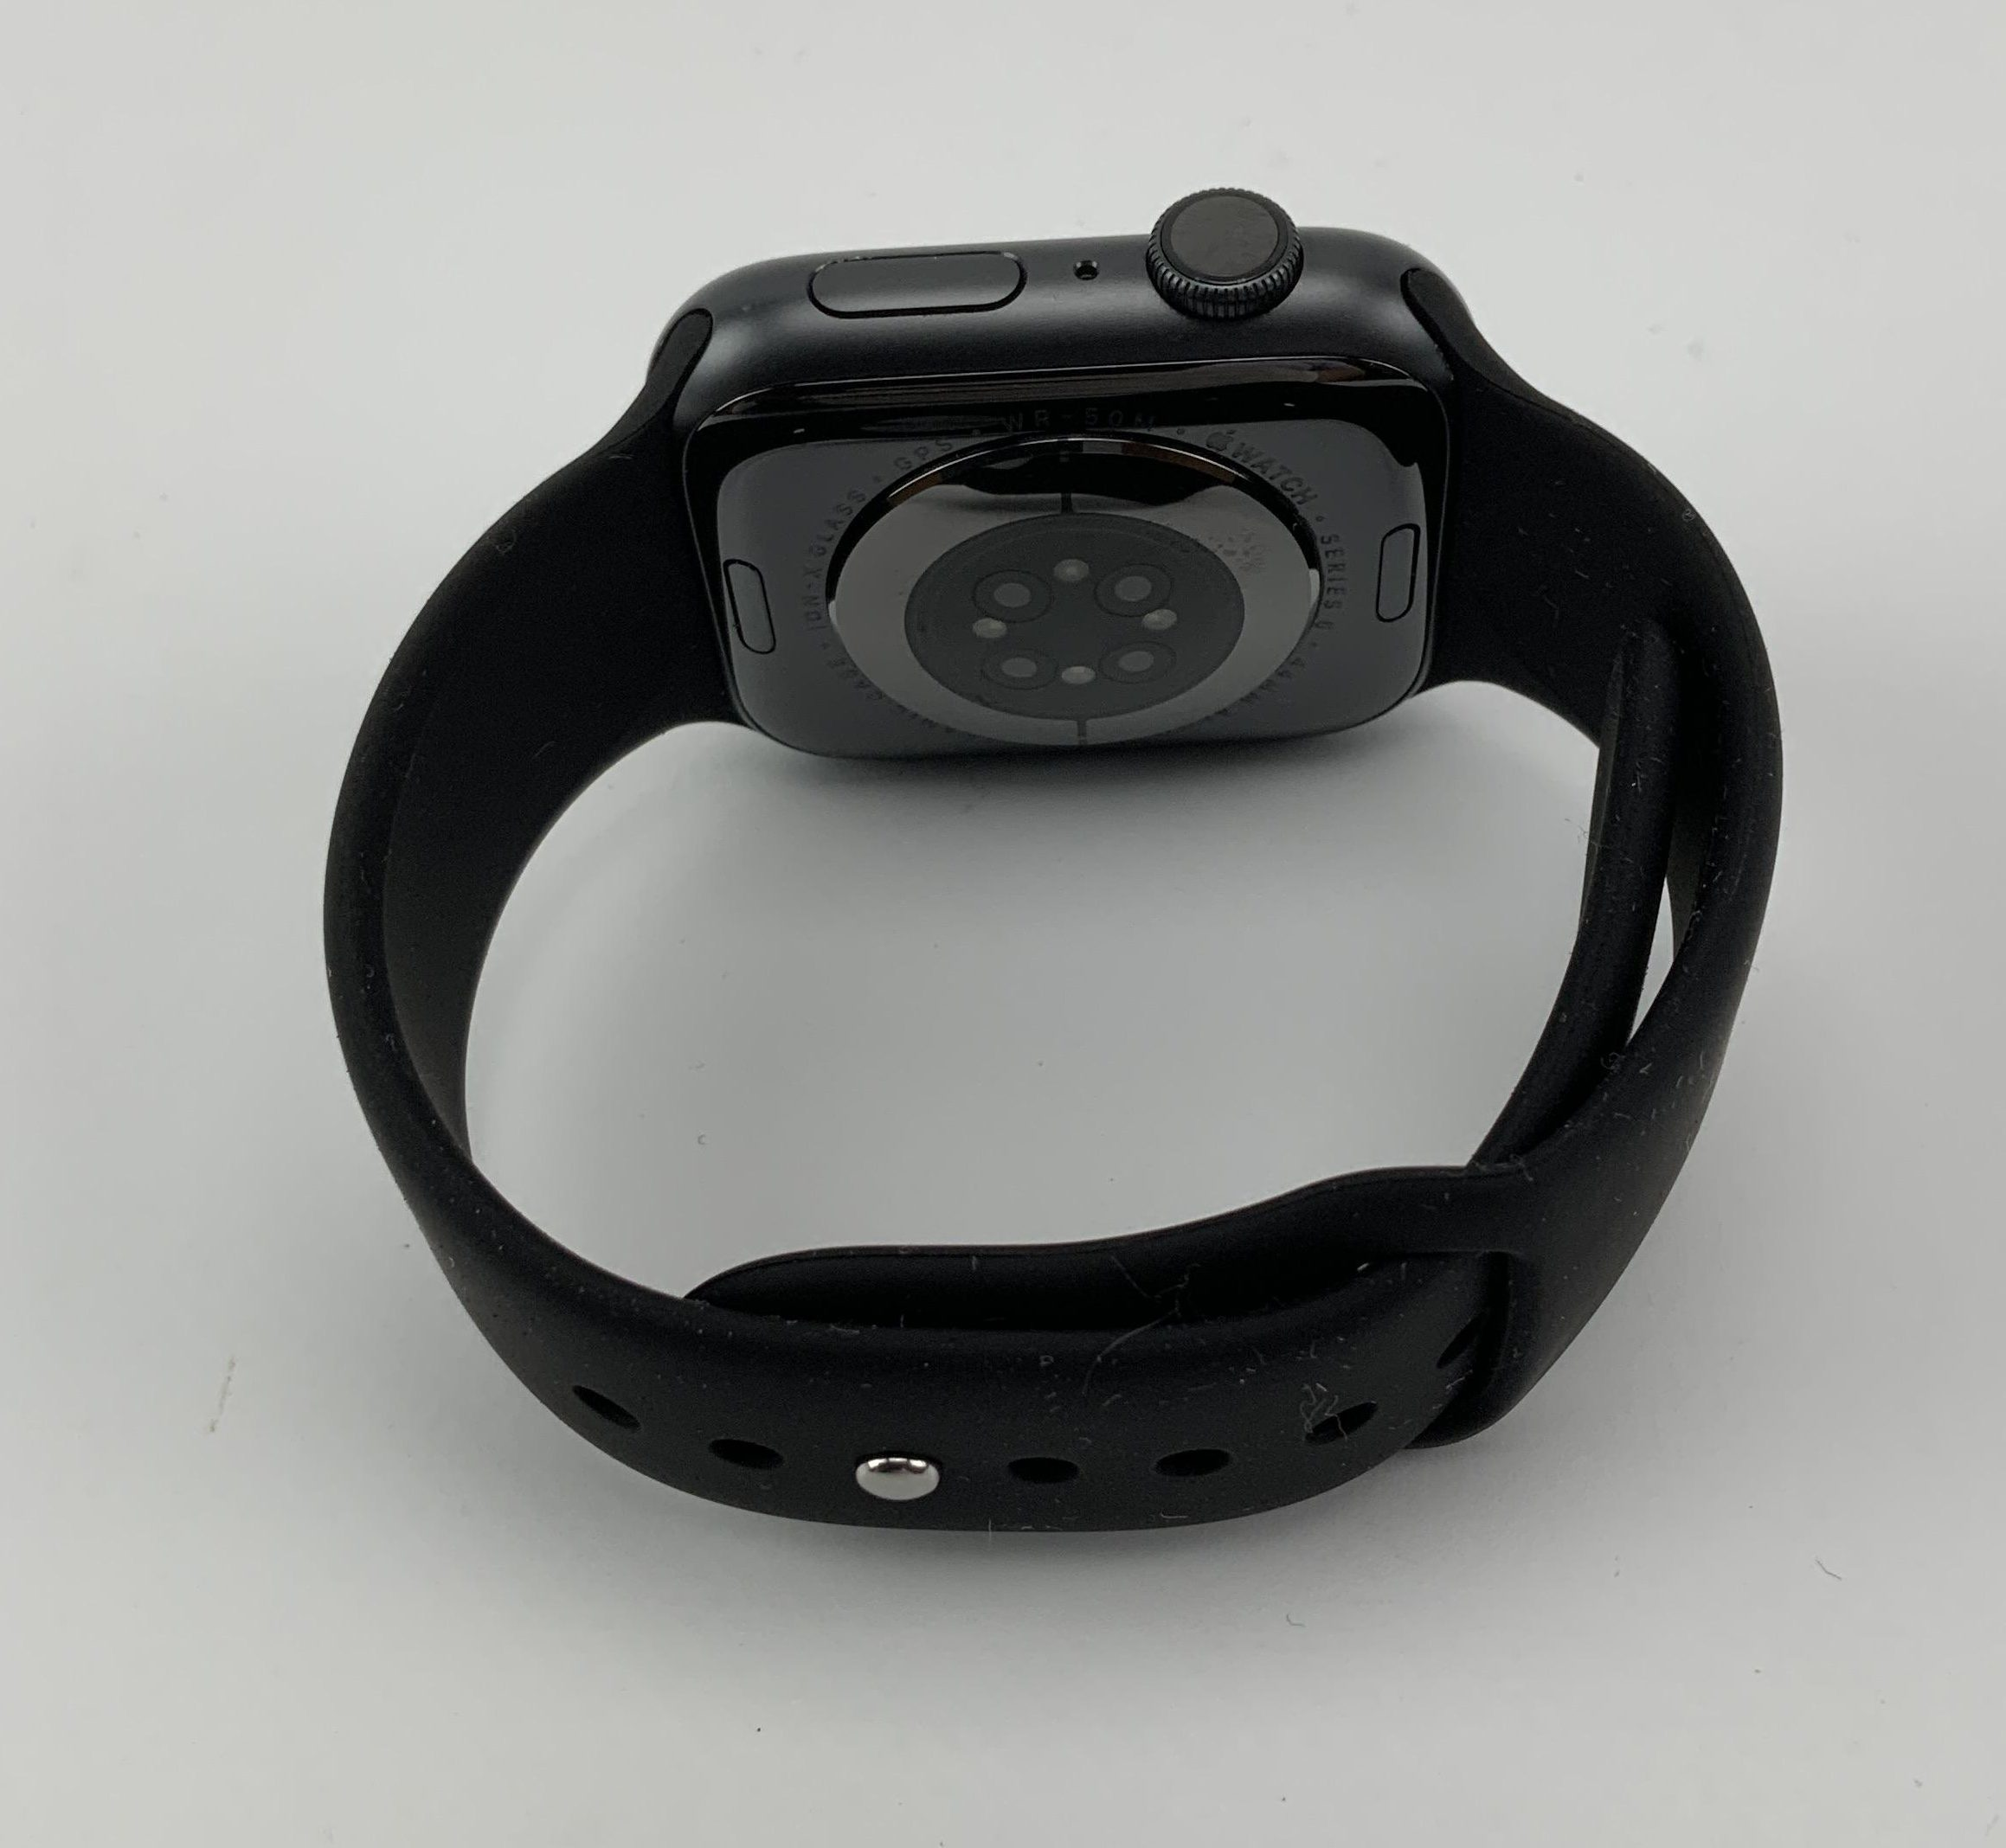 Watch Series 6 Aluminum (44mm), Space Gray, image 6